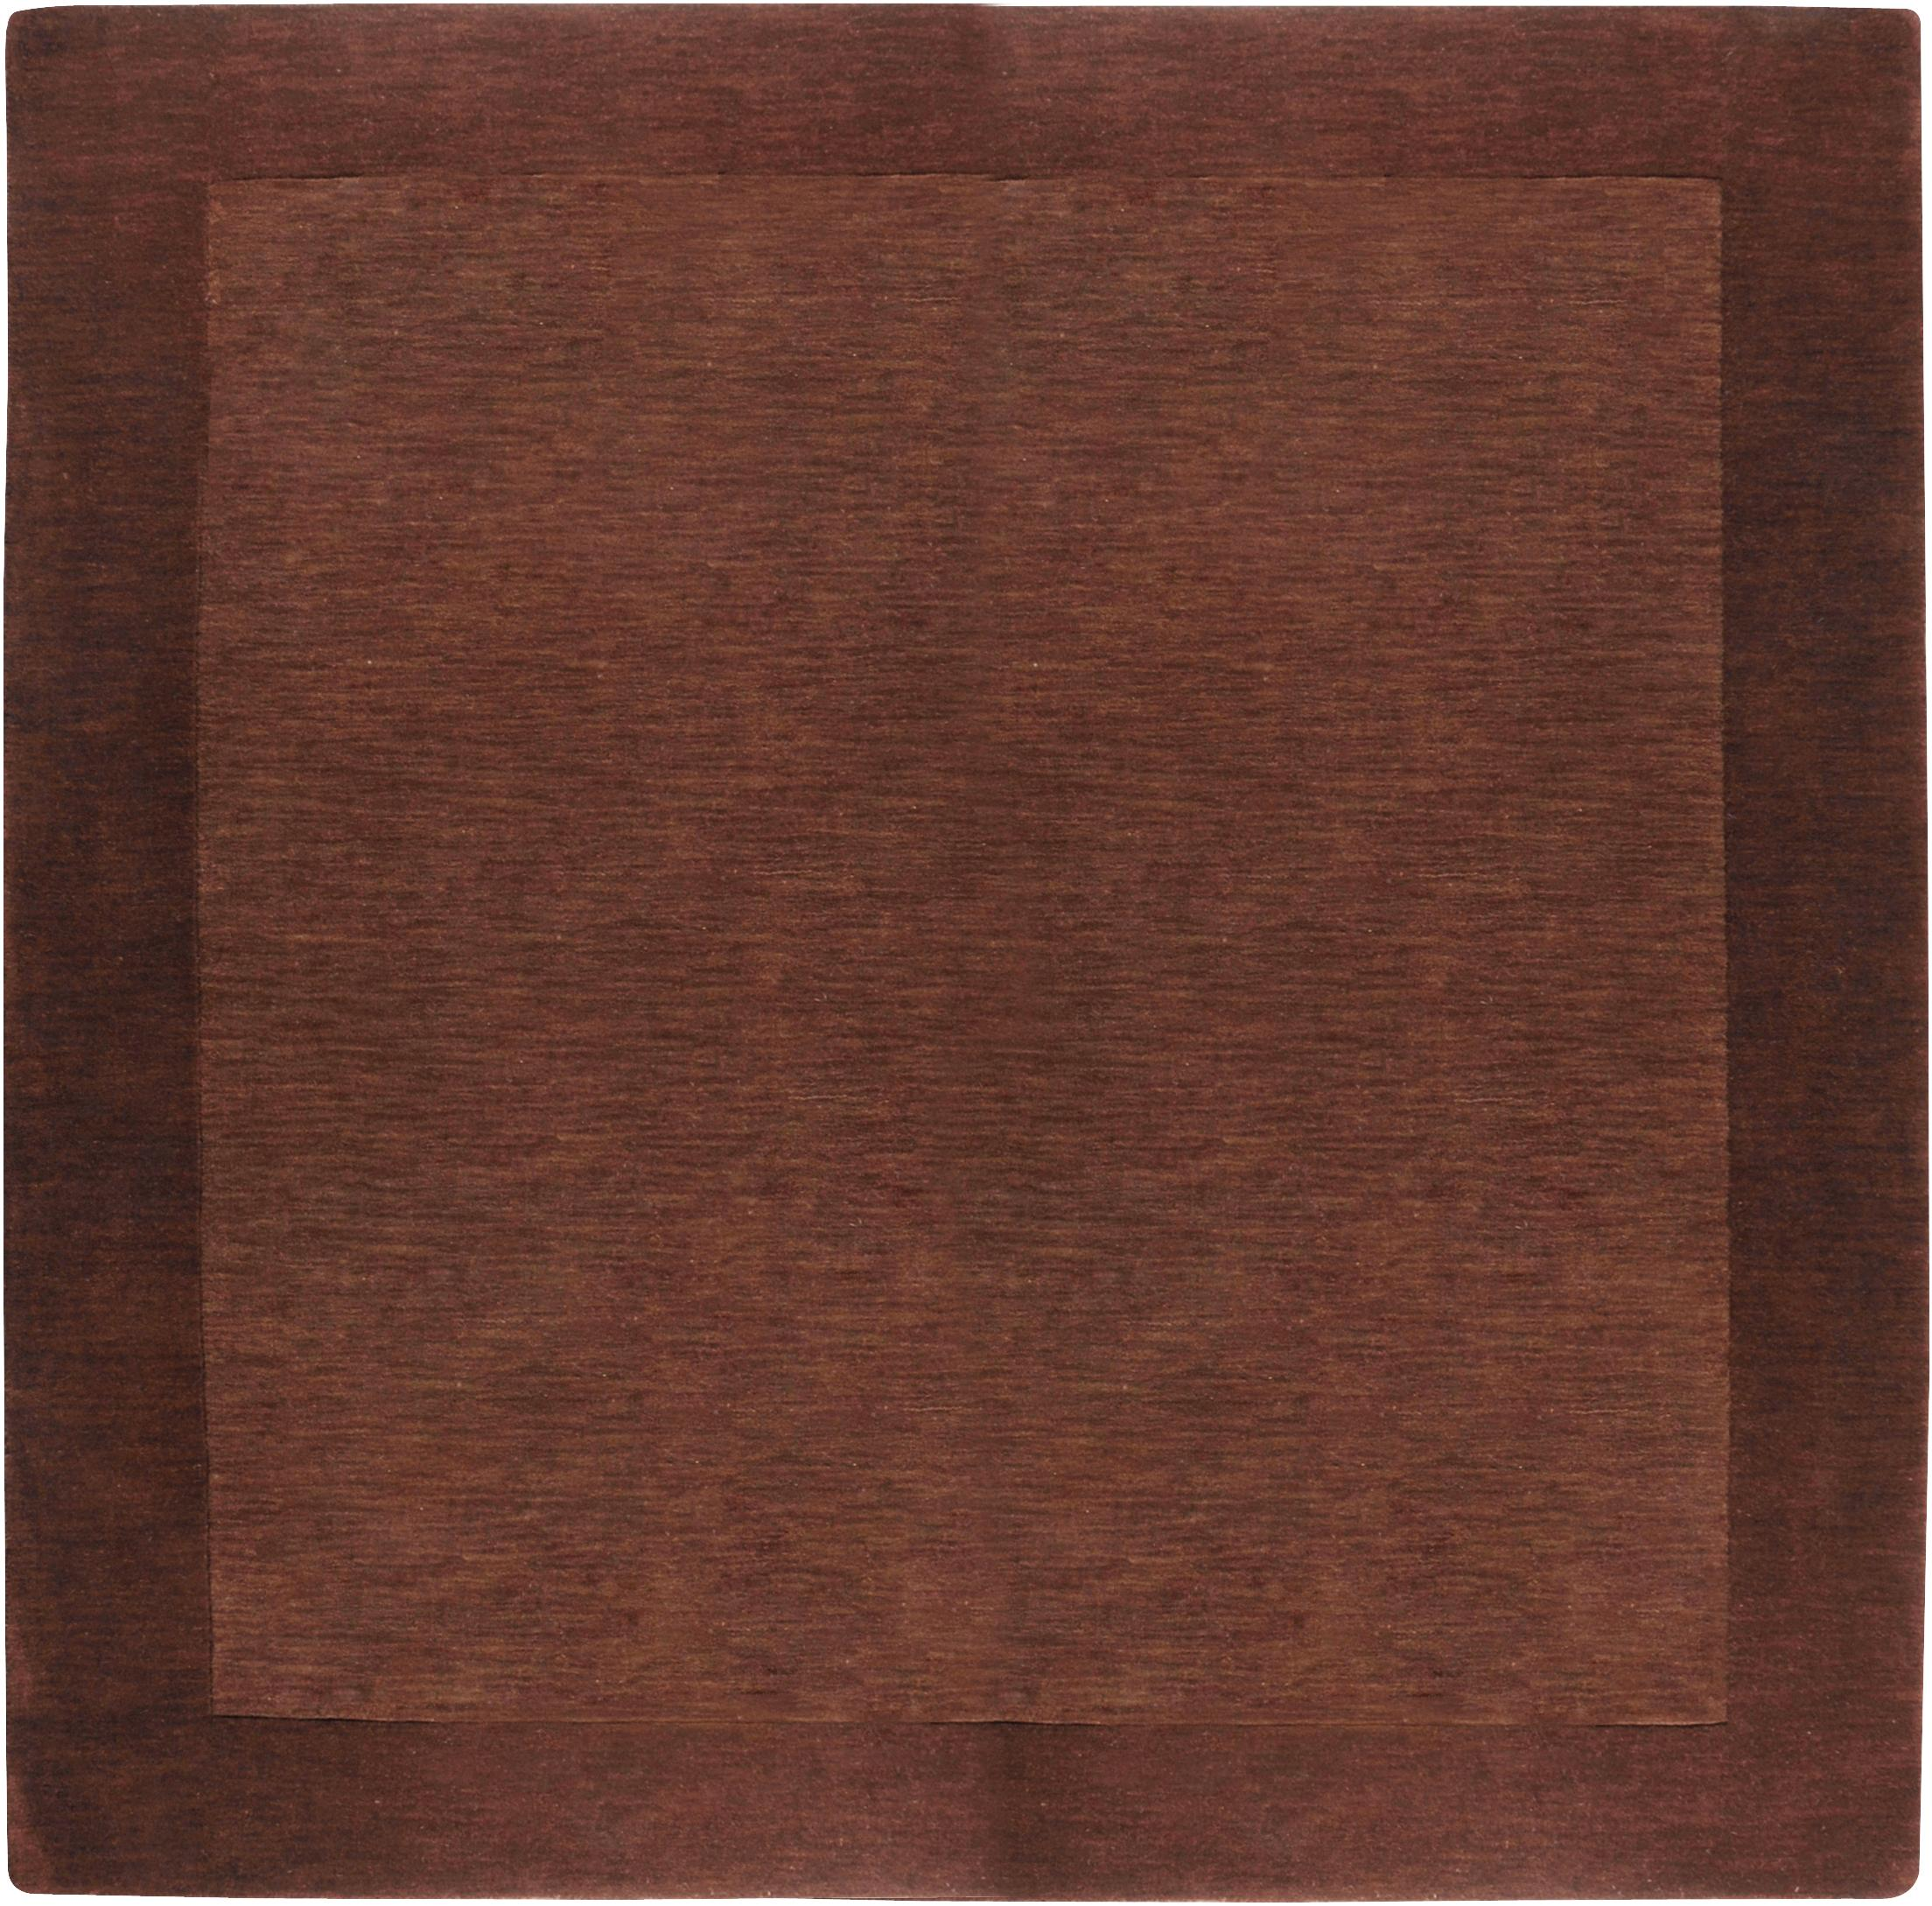 Surya Mystique 6' Square - Item Number: M294-6SQ